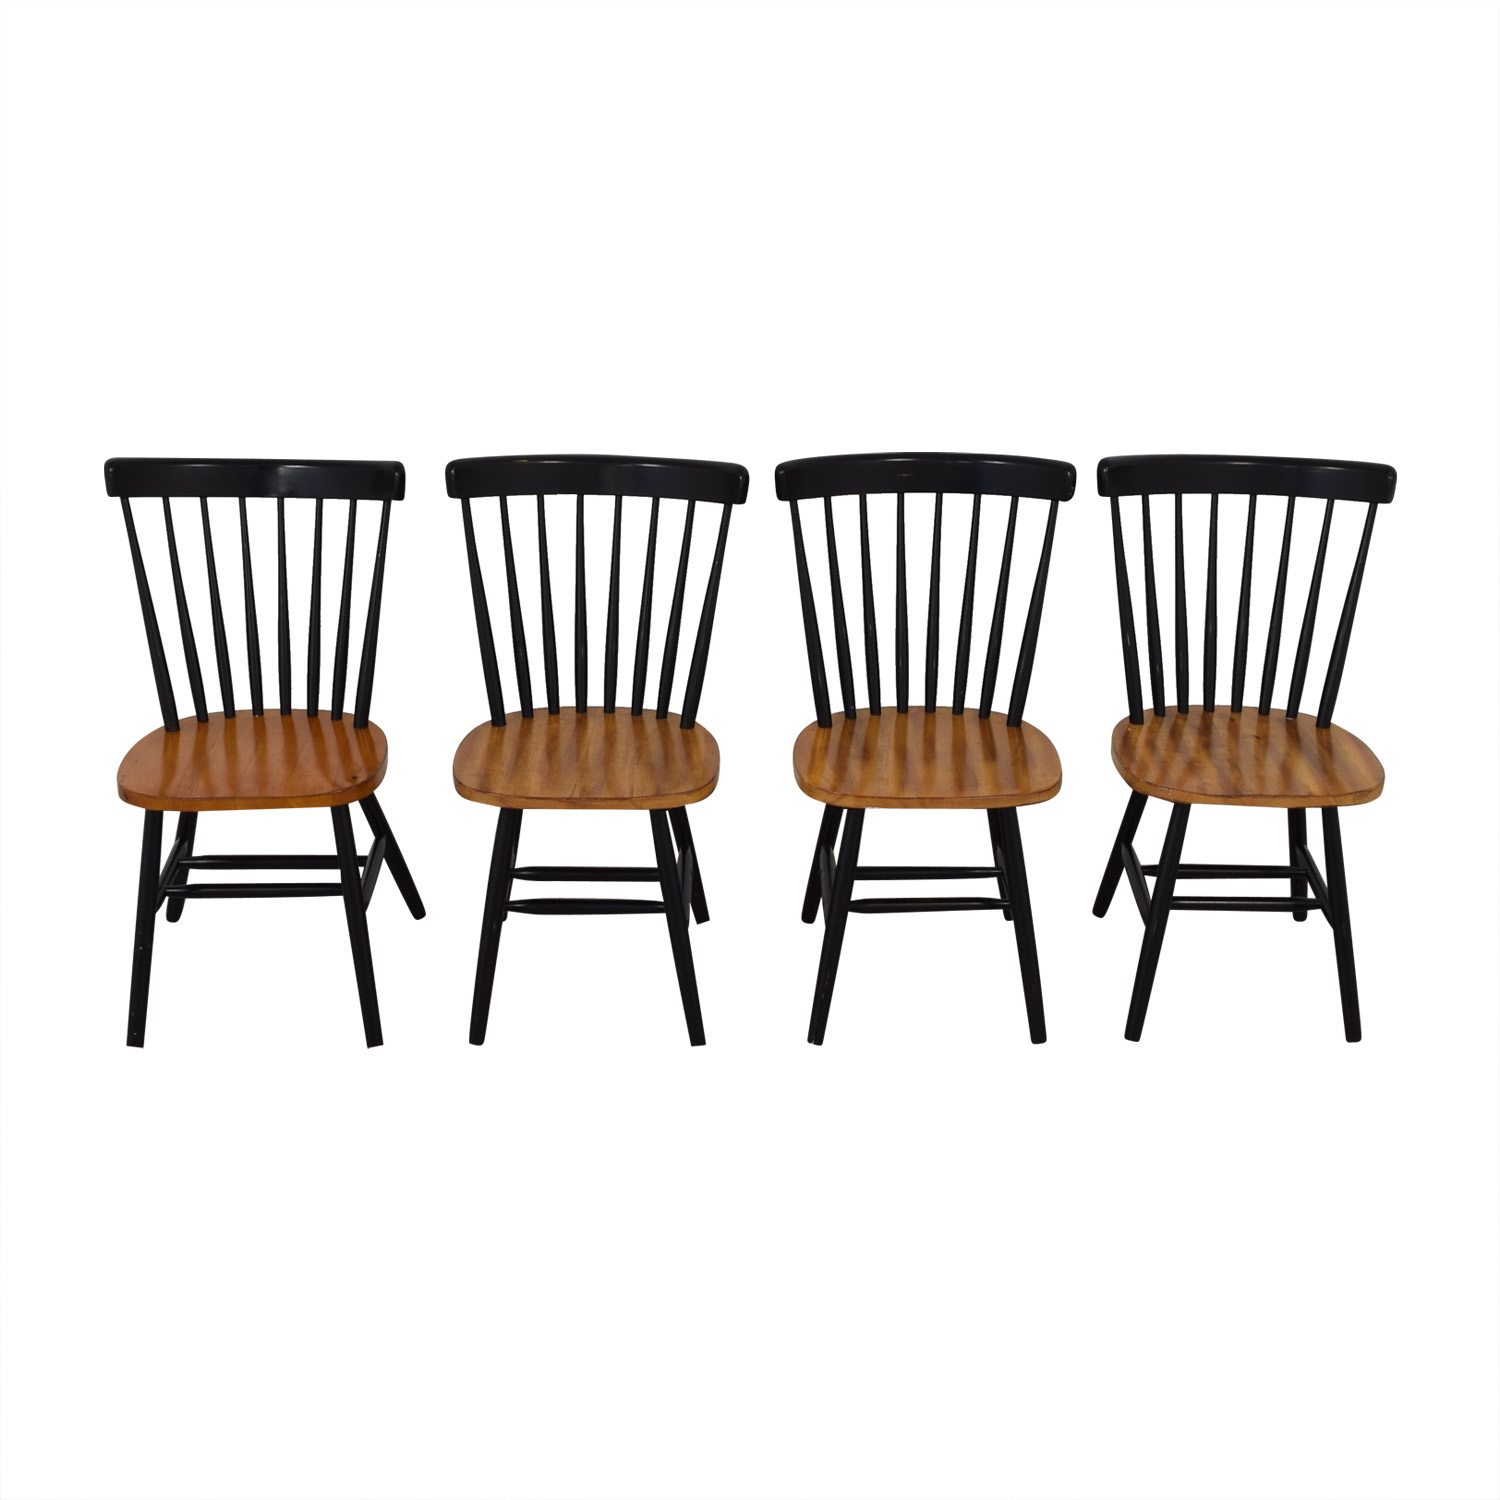 Copenhagen Spindle Back Dining Chairs / Chairs